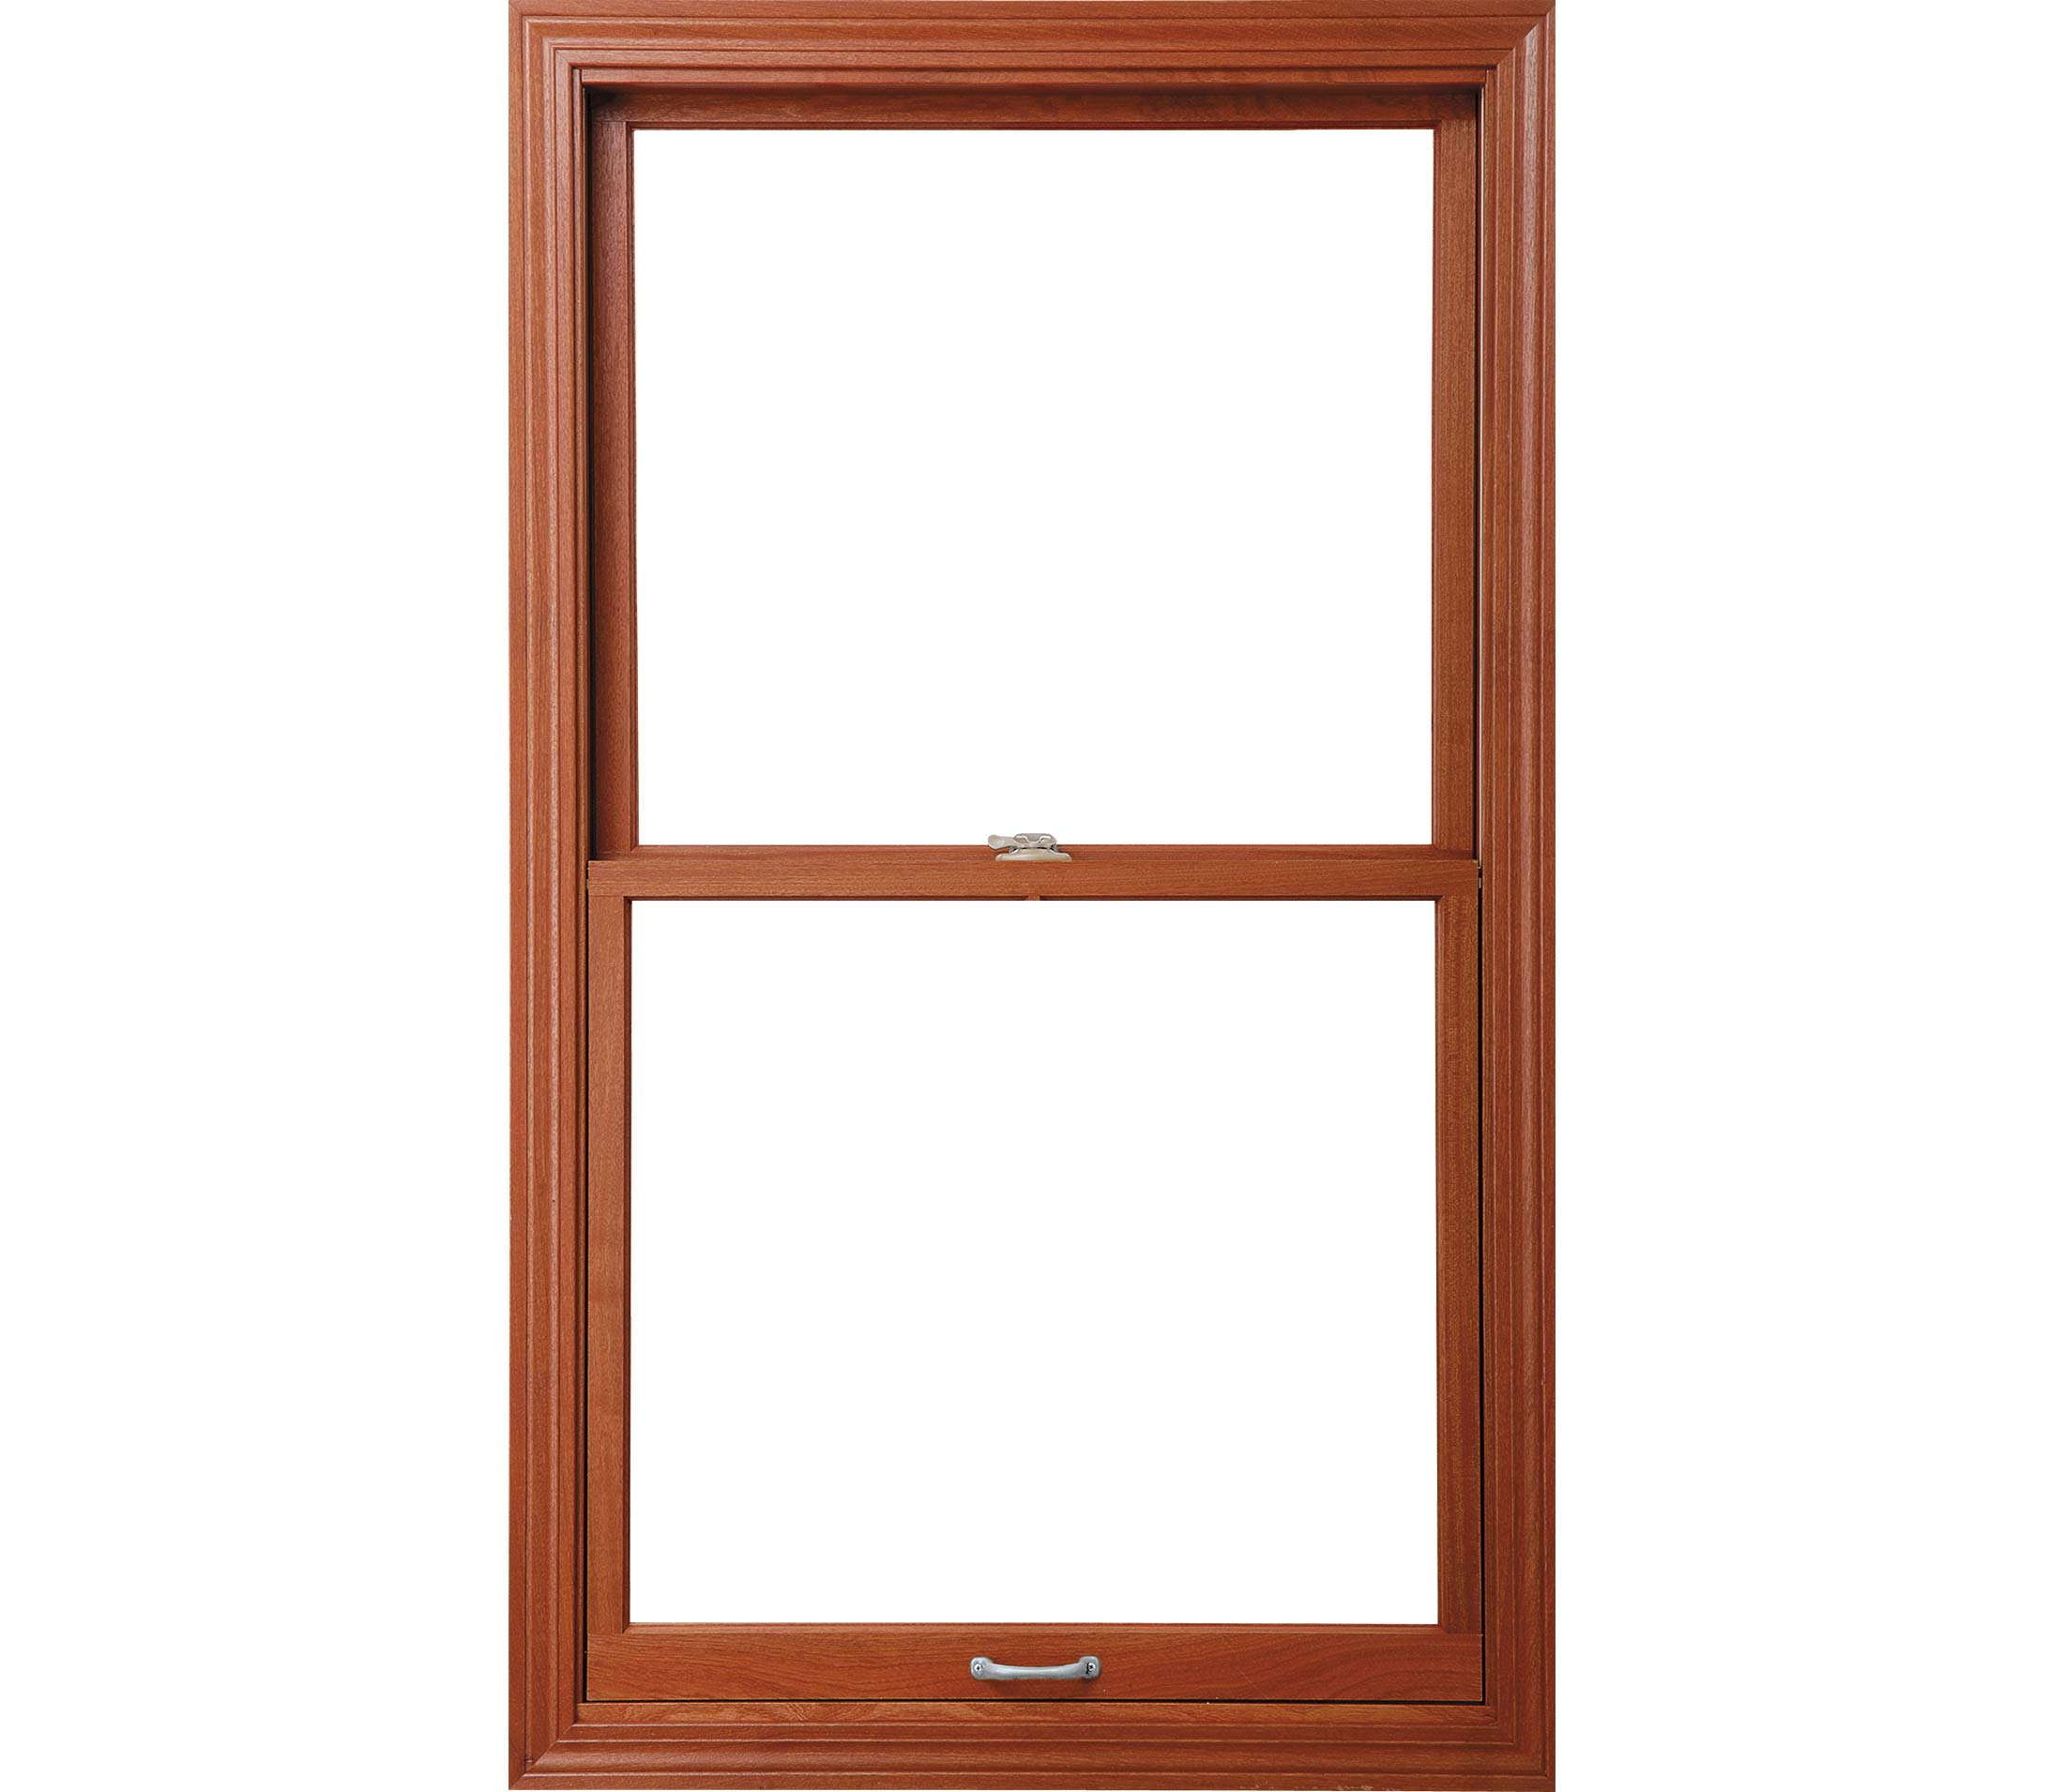 Architect Series Double Hung pella Windows